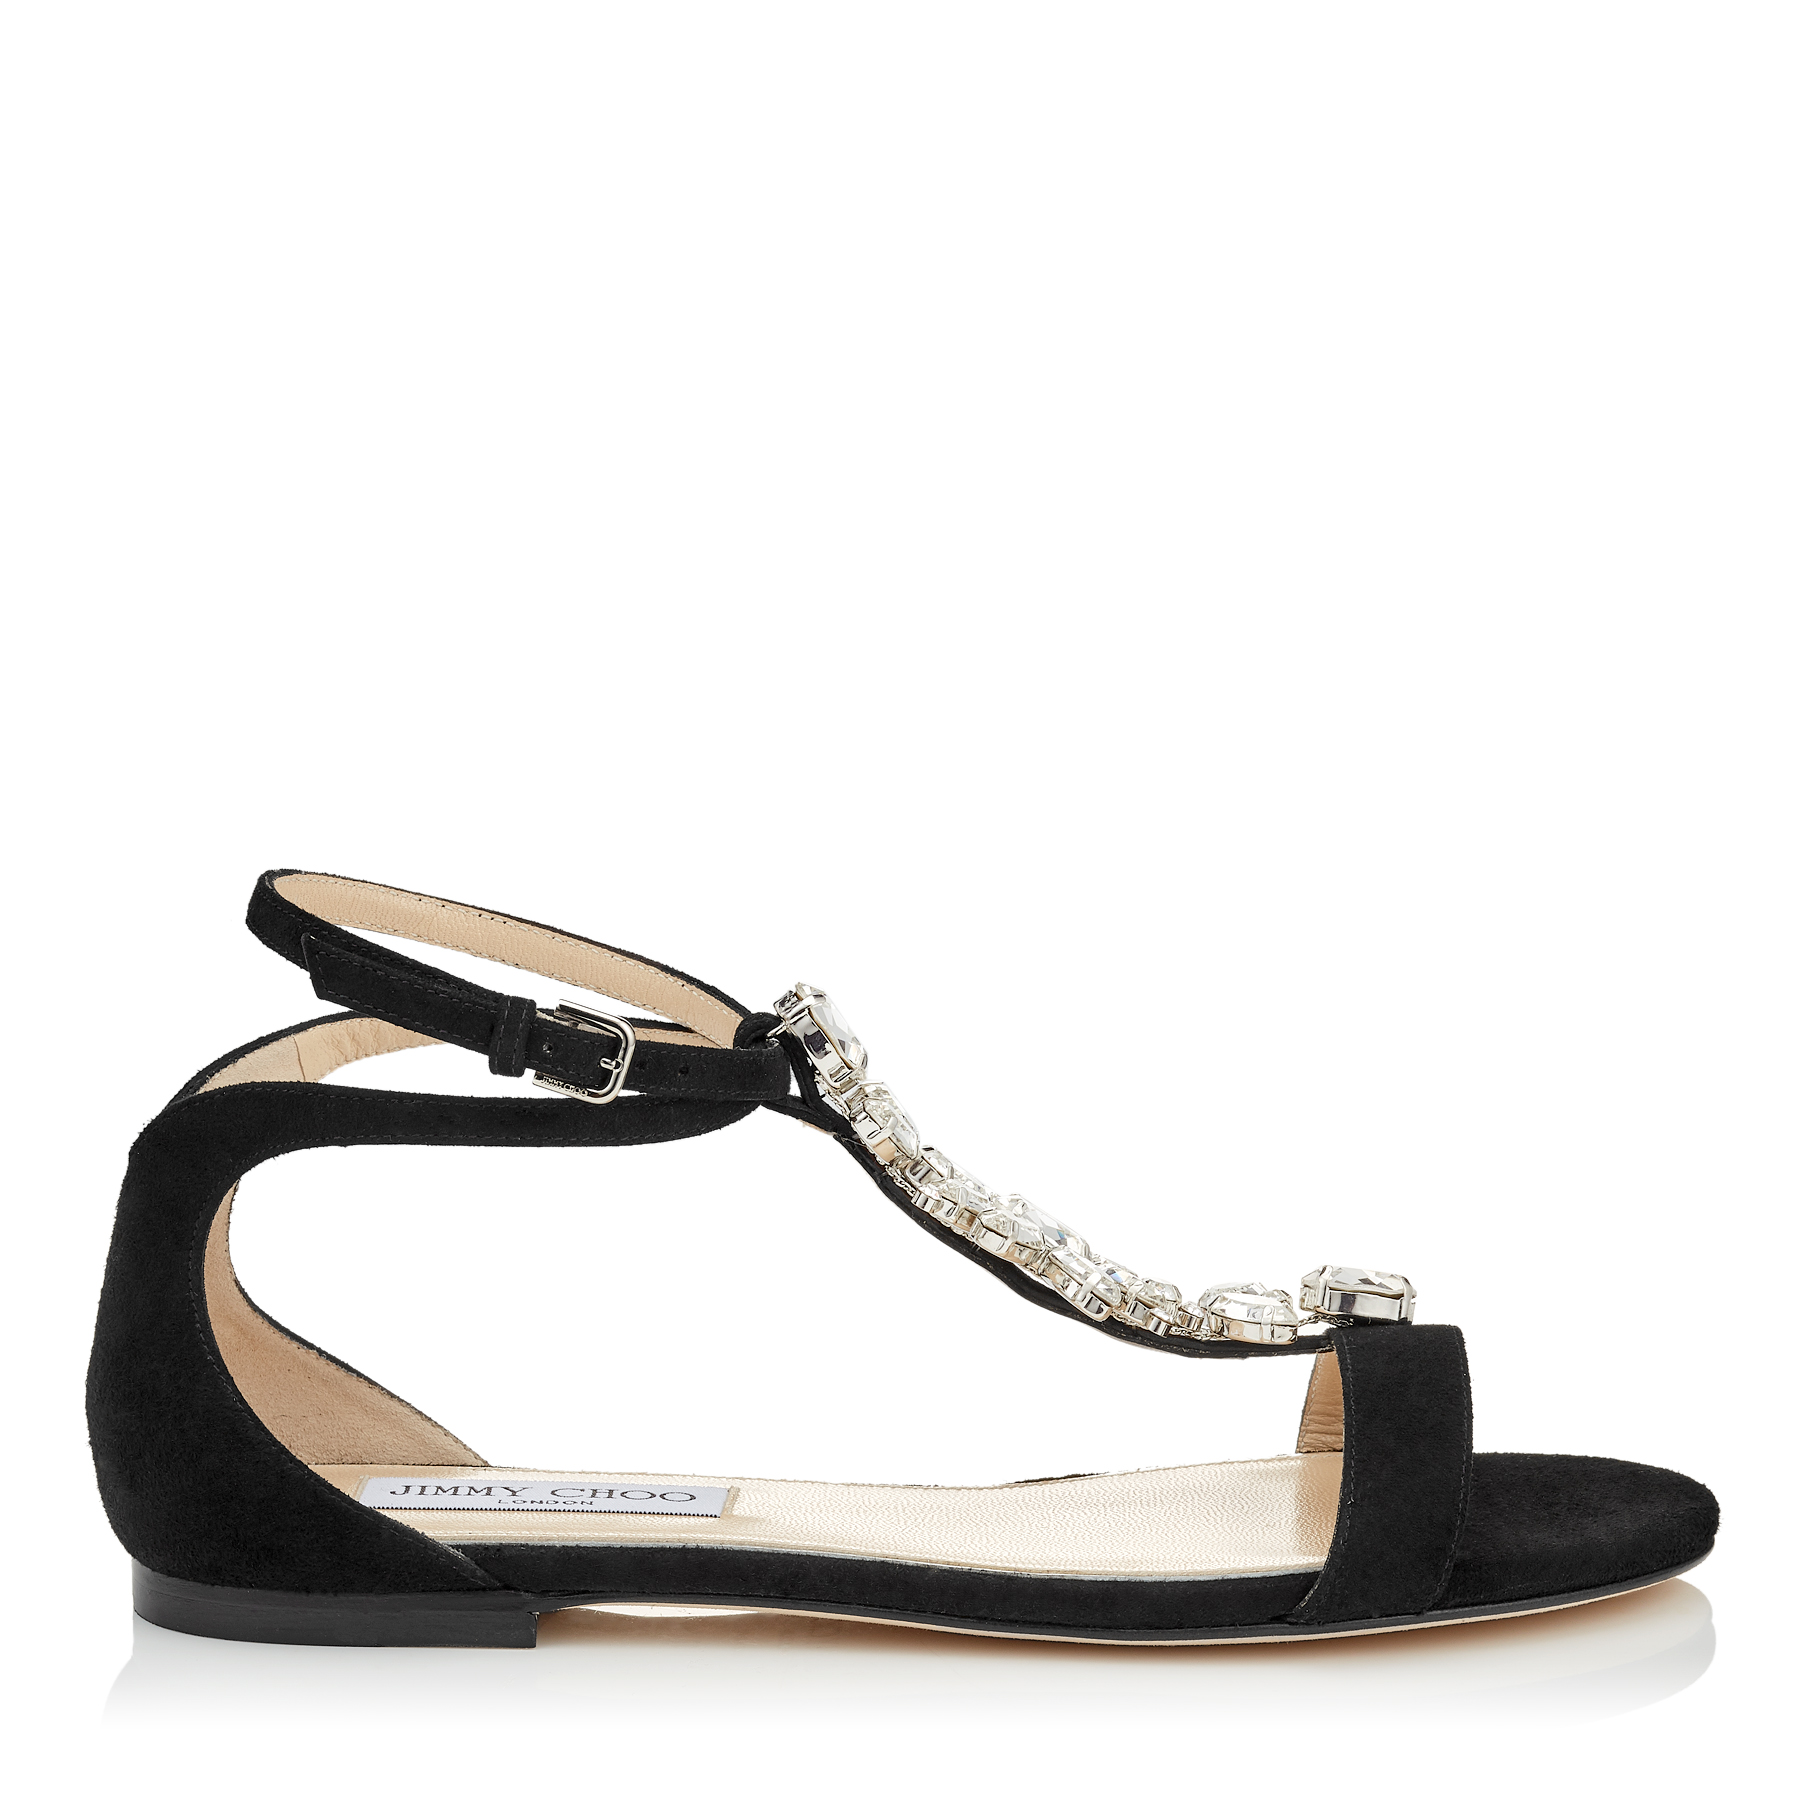 AVERIE FLAT Black Suede Sandals with Silver Crystal Piece by Jimmy Choo